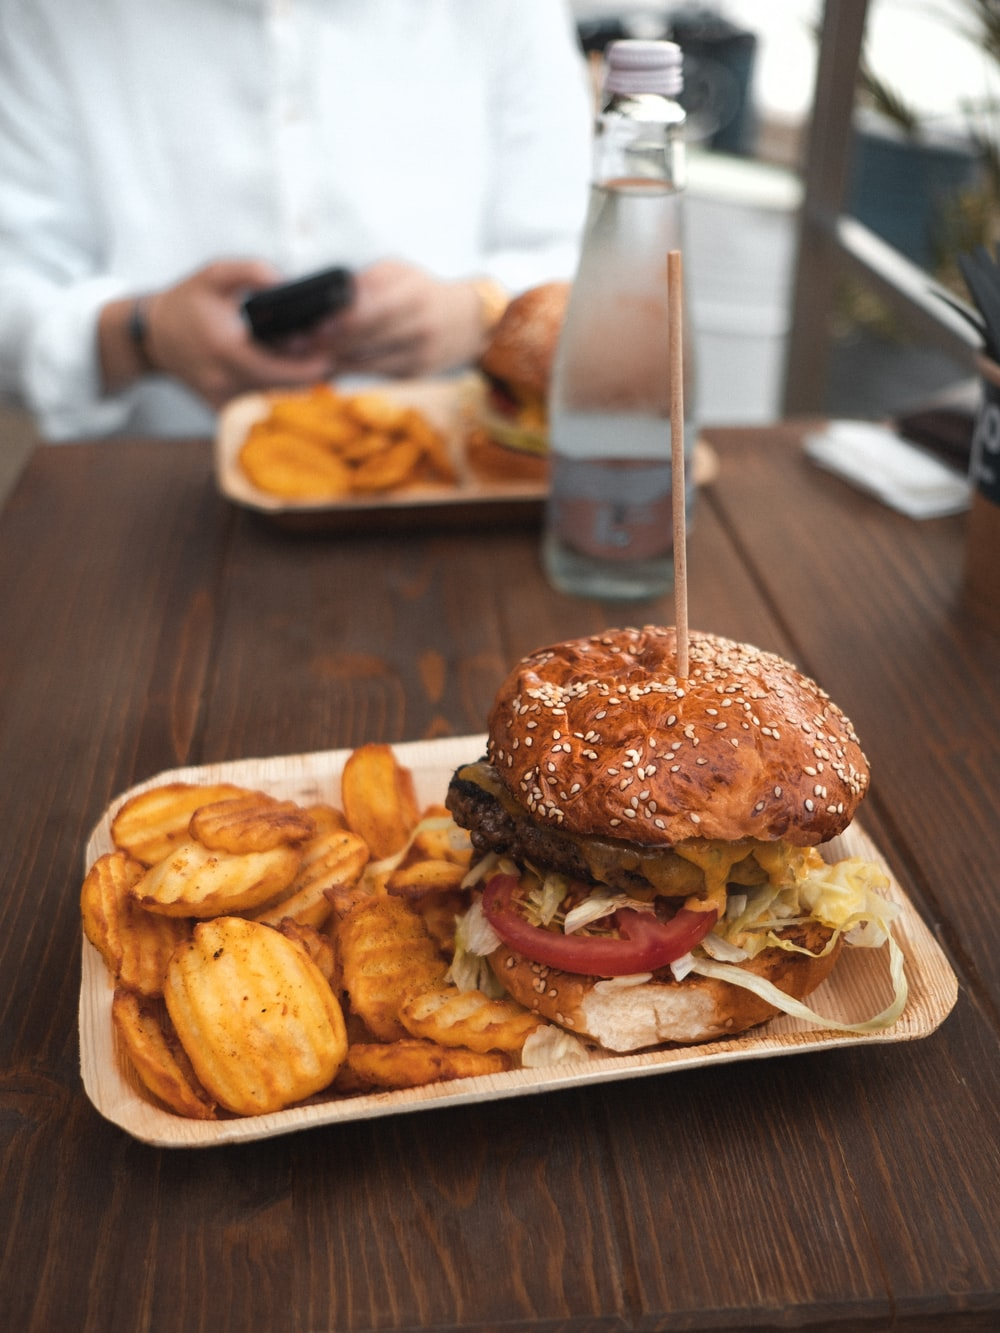 tasty burger and potato fries on plate